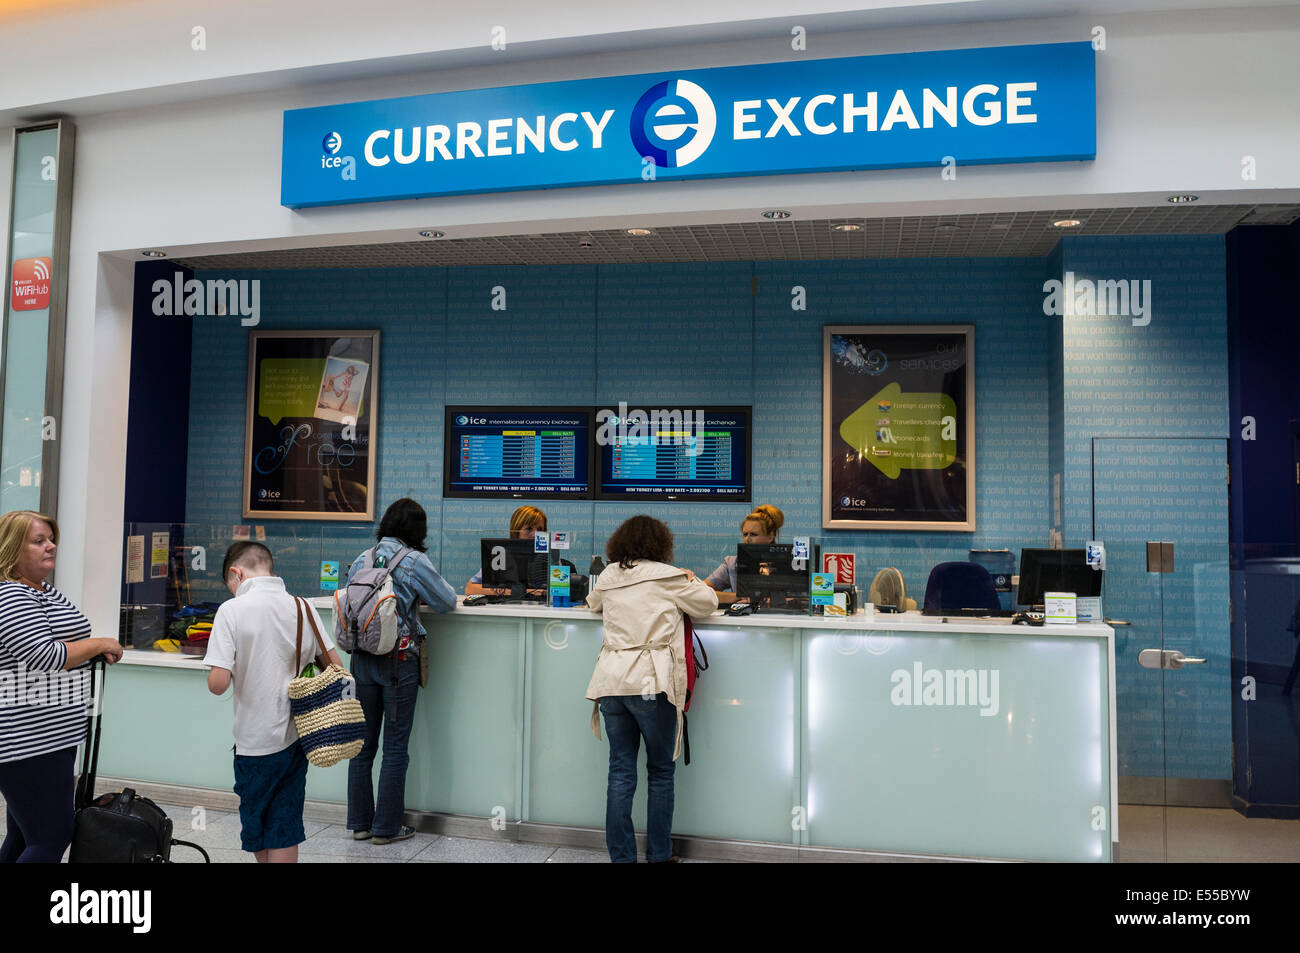 international currency exchange counter at terminal 2 in dublin stock photo 72033917 alamy. Black Bedroom Furniture Sets. Home Design Ideas